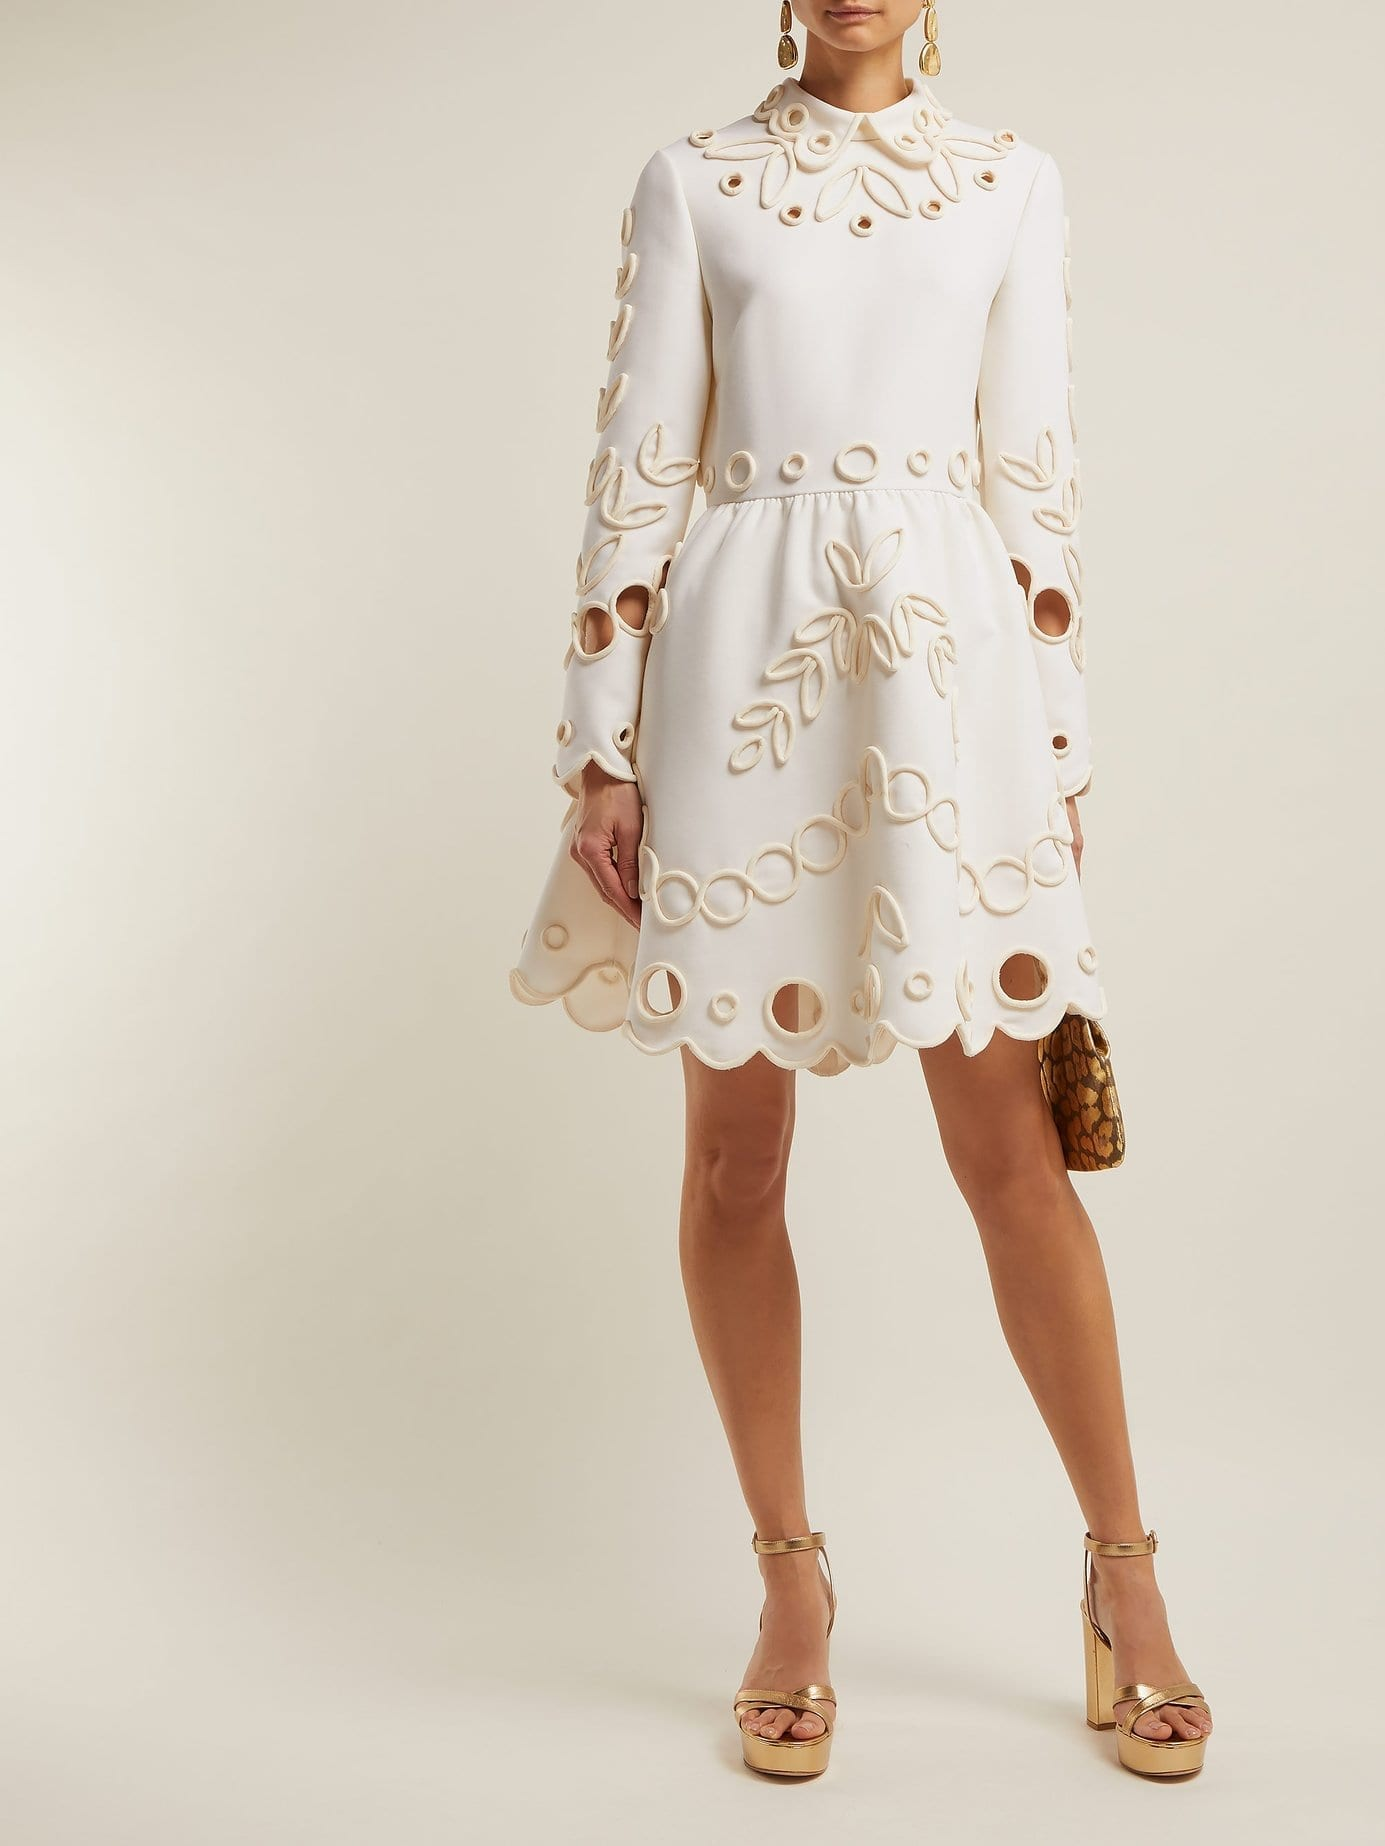 VALENTINO Floral Piping Embellished Crepe Midi Ivory Dress